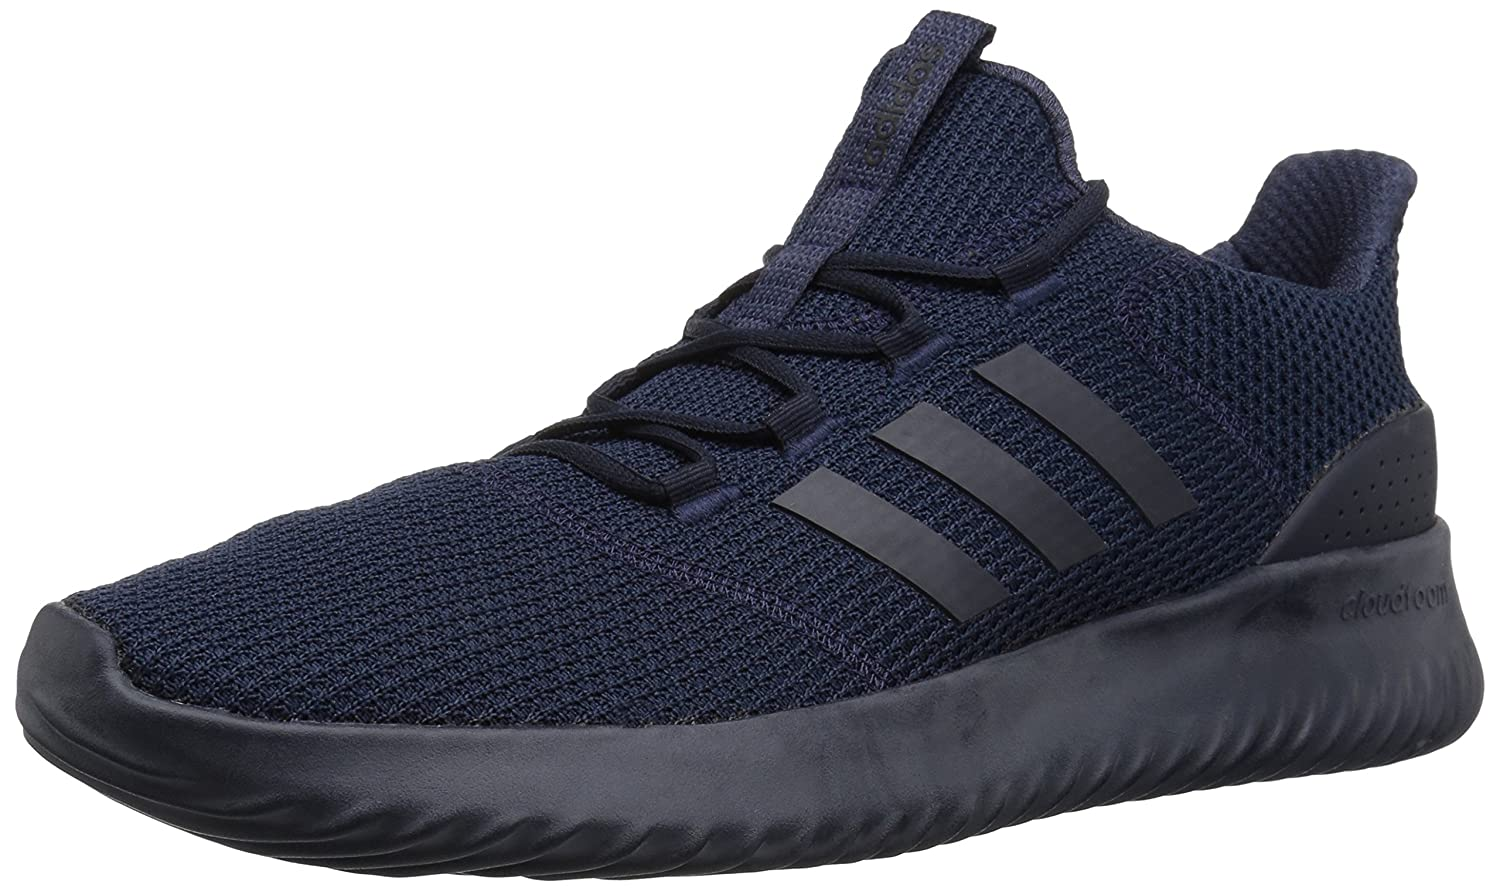 adidas Men's Cloudfoam Ultimate Running Shoe B077XBKFDV 8.5 D(M) US|Legend Ink/Legend Ink/Trace Blue